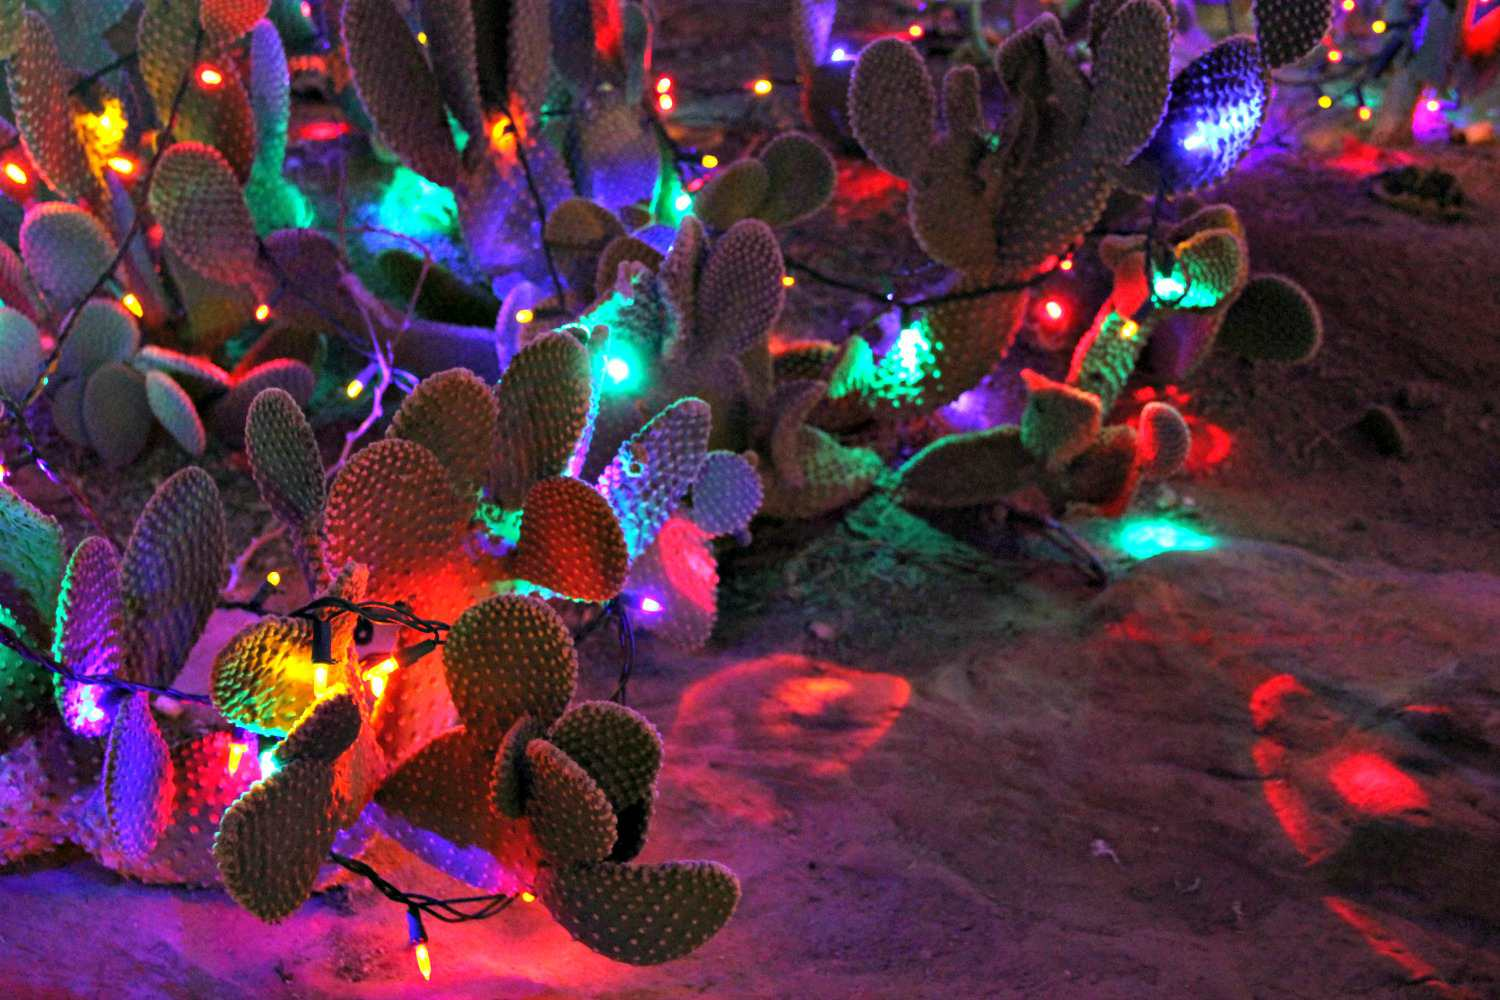 Paddle cactus plants decorated with multi-color bulbs